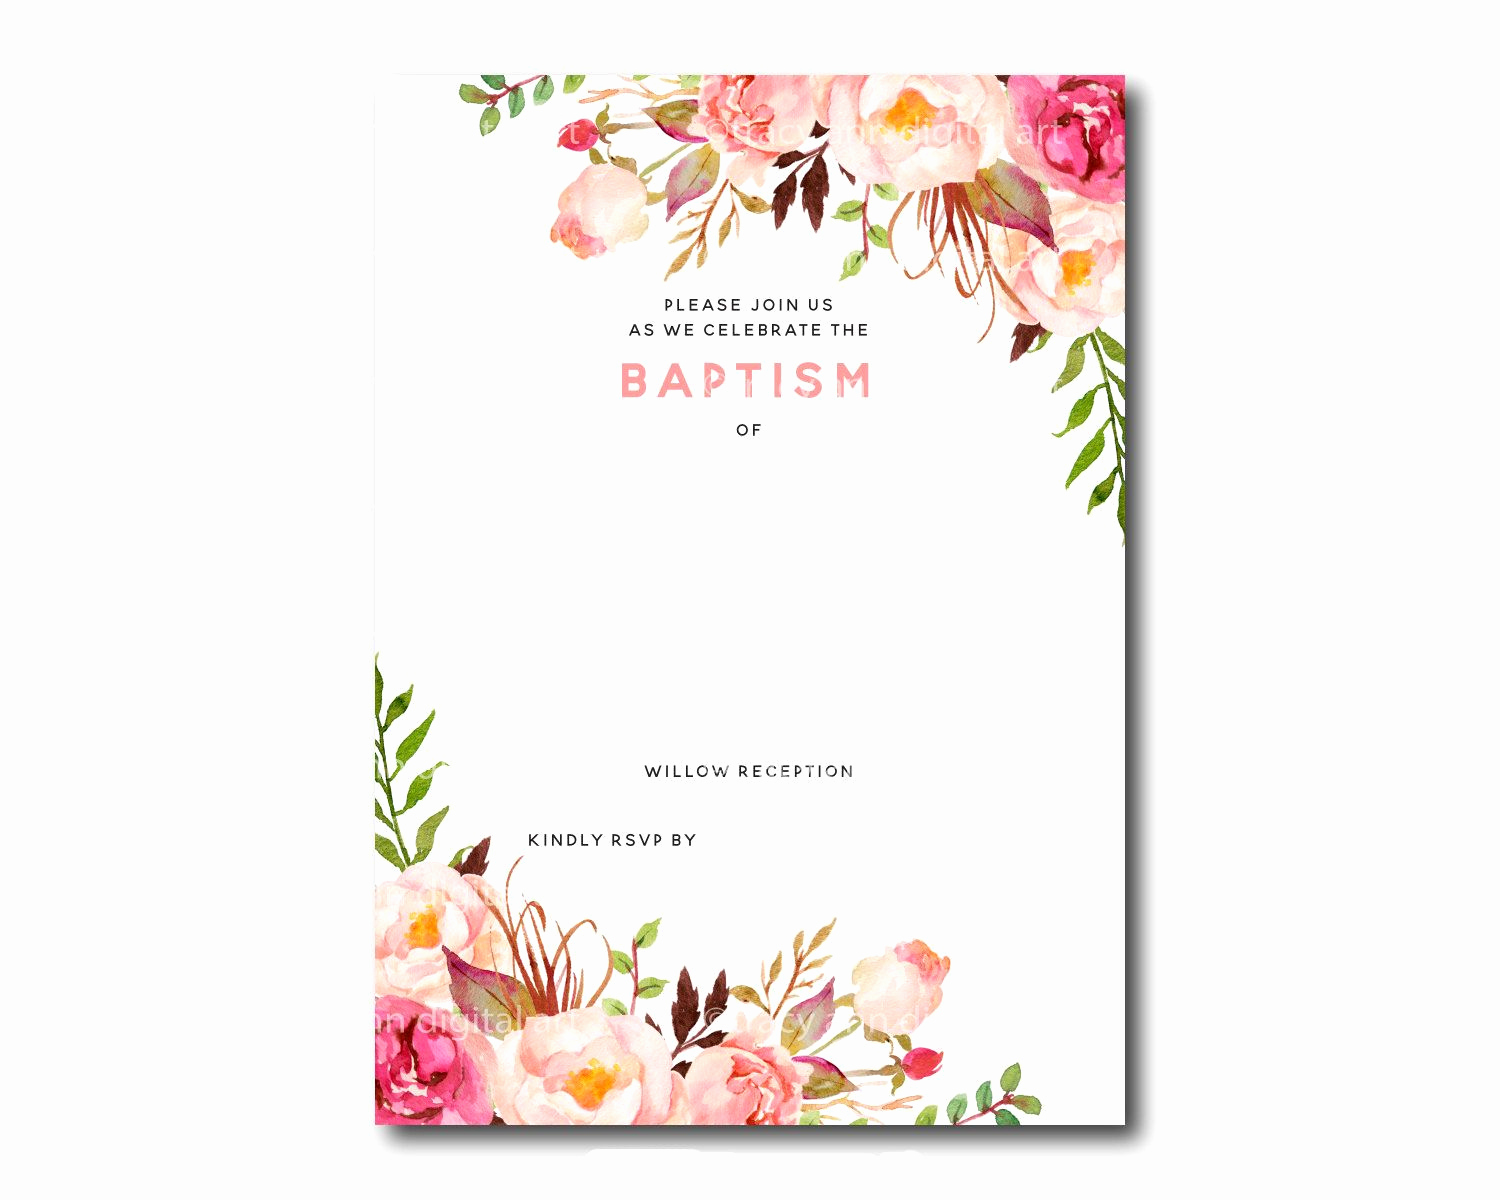 Wedding Invitation Templates Free Download Inspirational Awesome Free Template Free Printable Baptism Floral